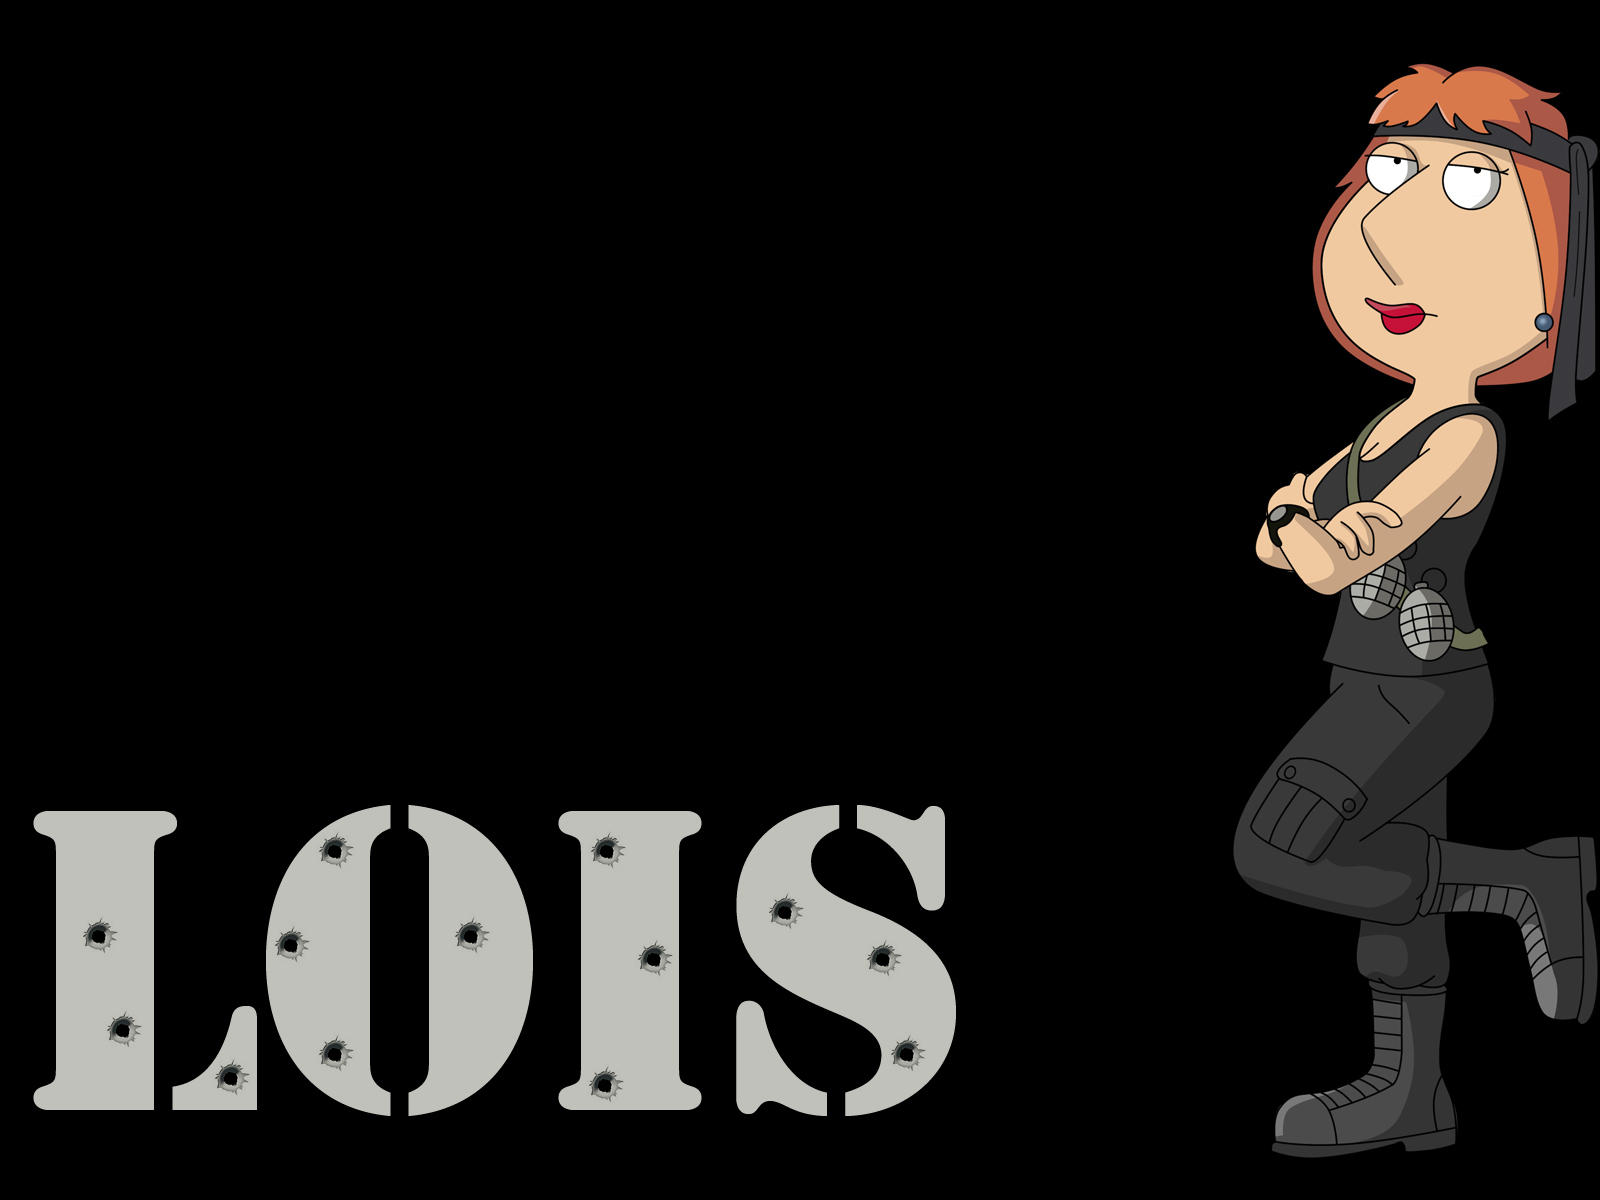 Battle Ready Lois Wallpaper   Family Guy Wallpaper 9982399 1600x1200